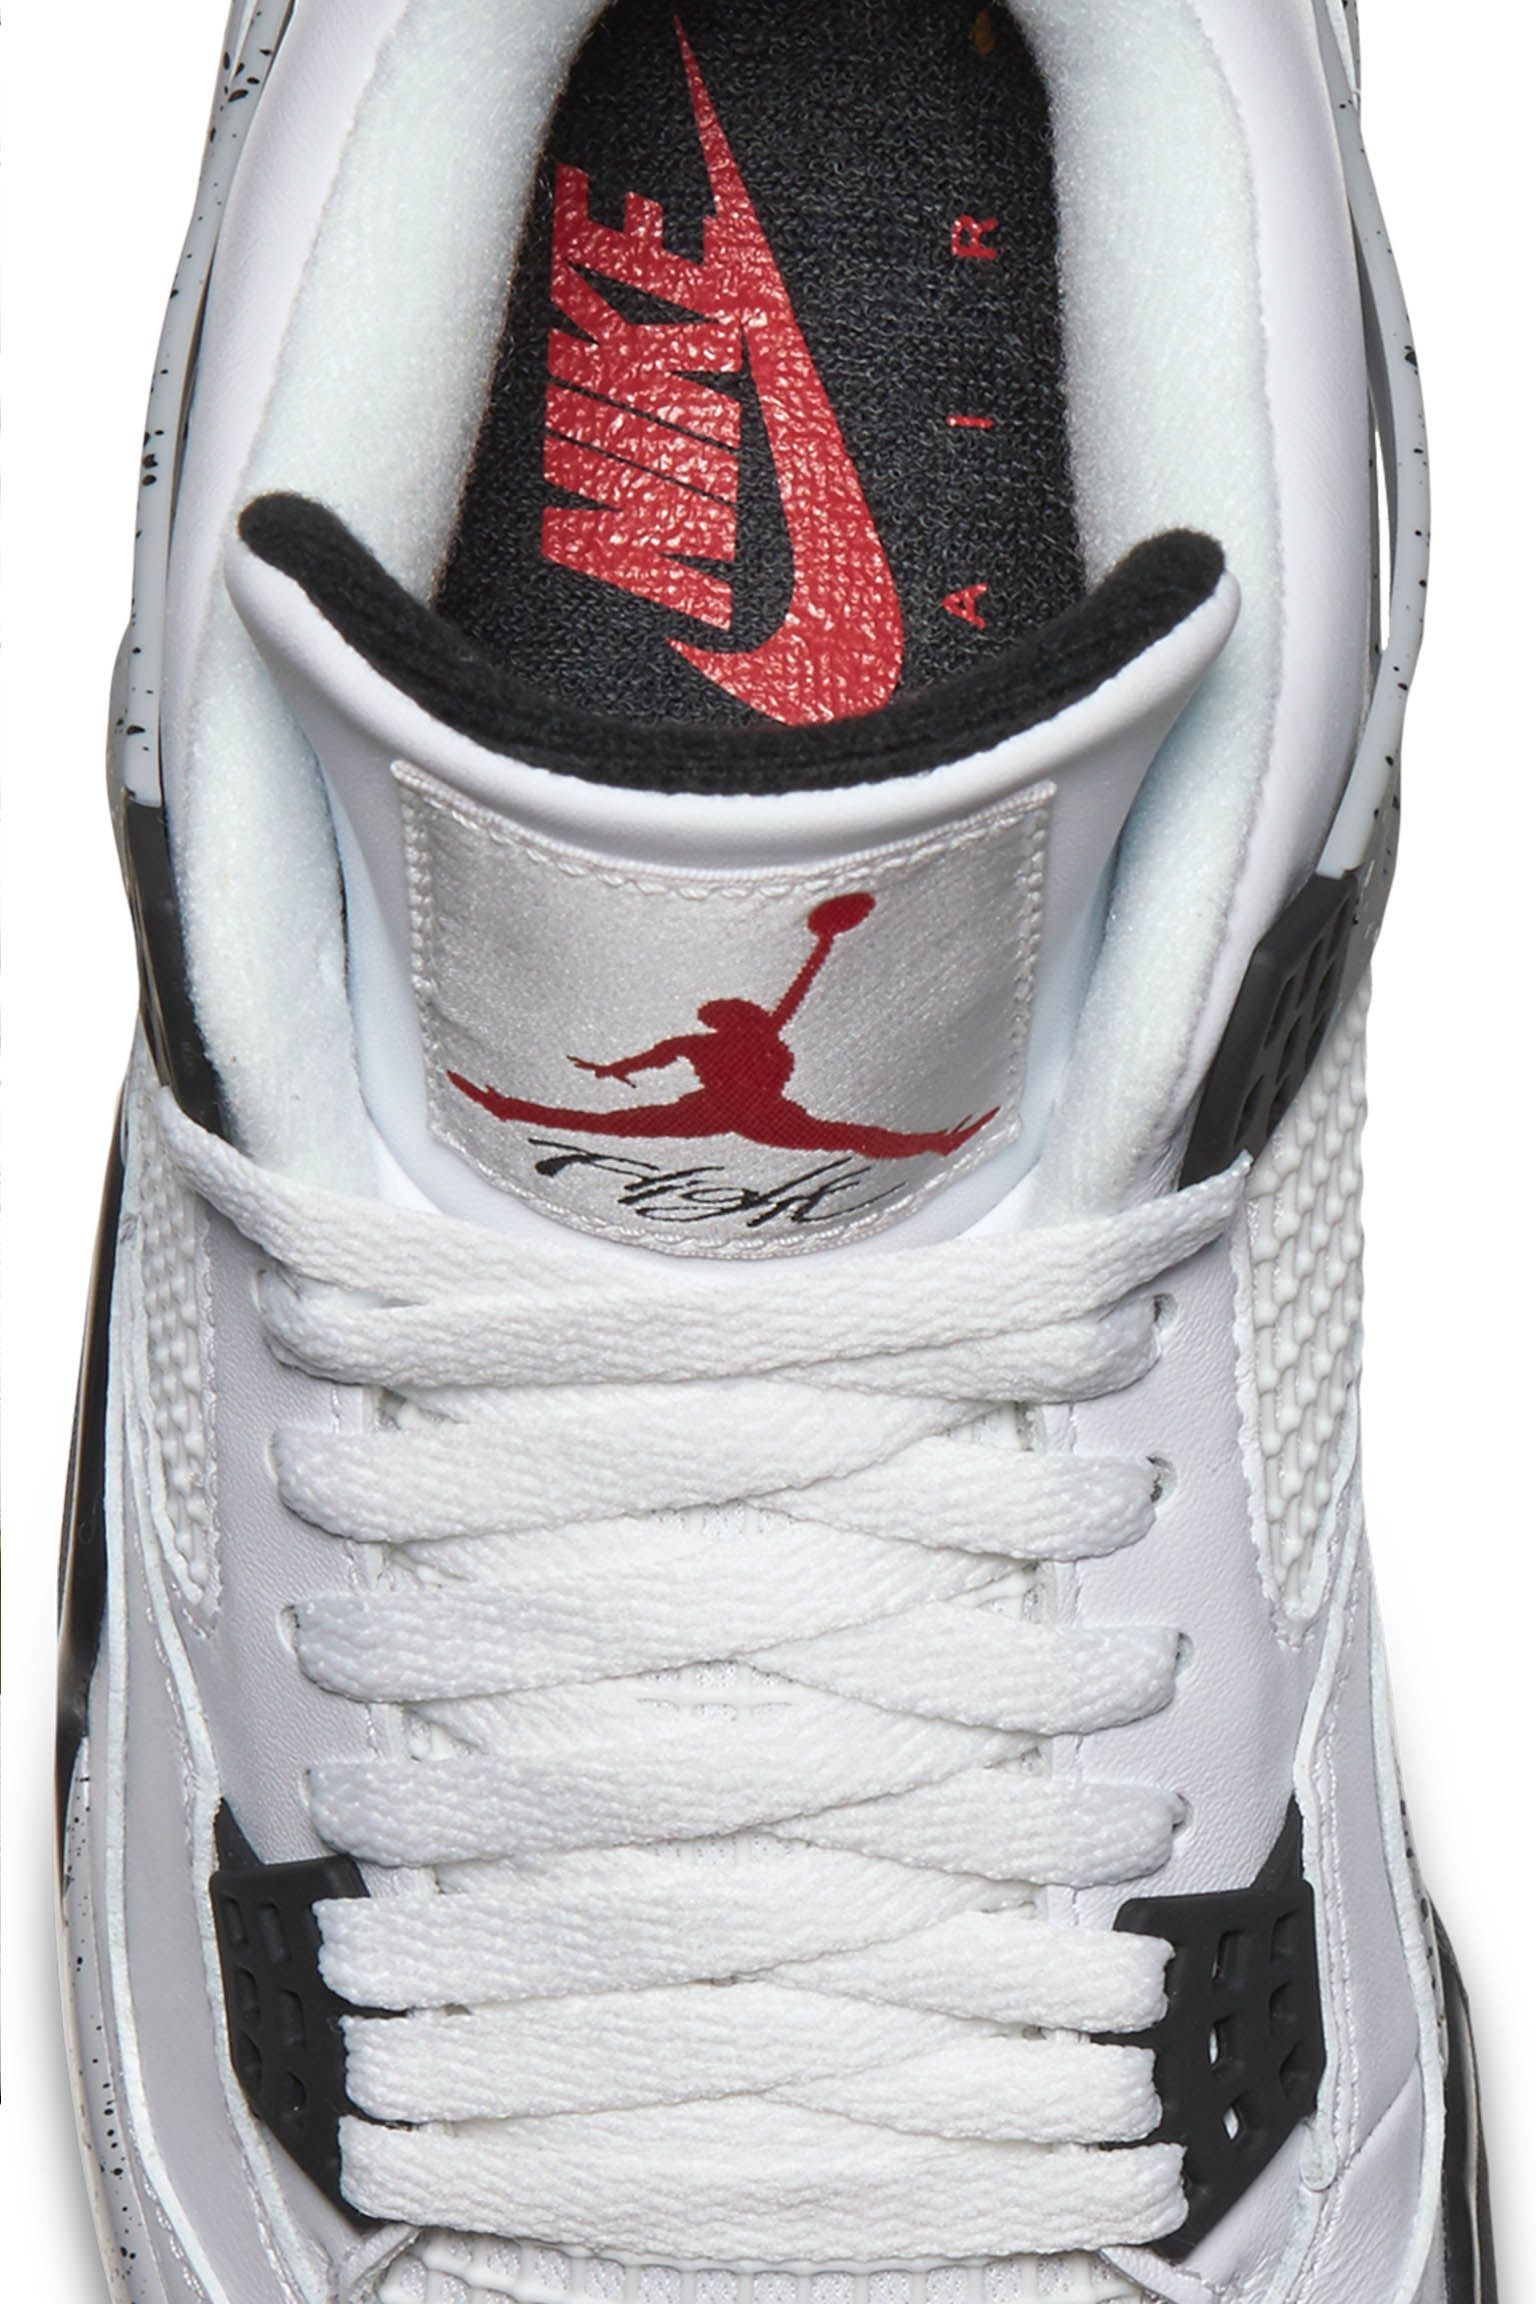 Air Jordan 4 Retro 'White Cement Grey' Release Date